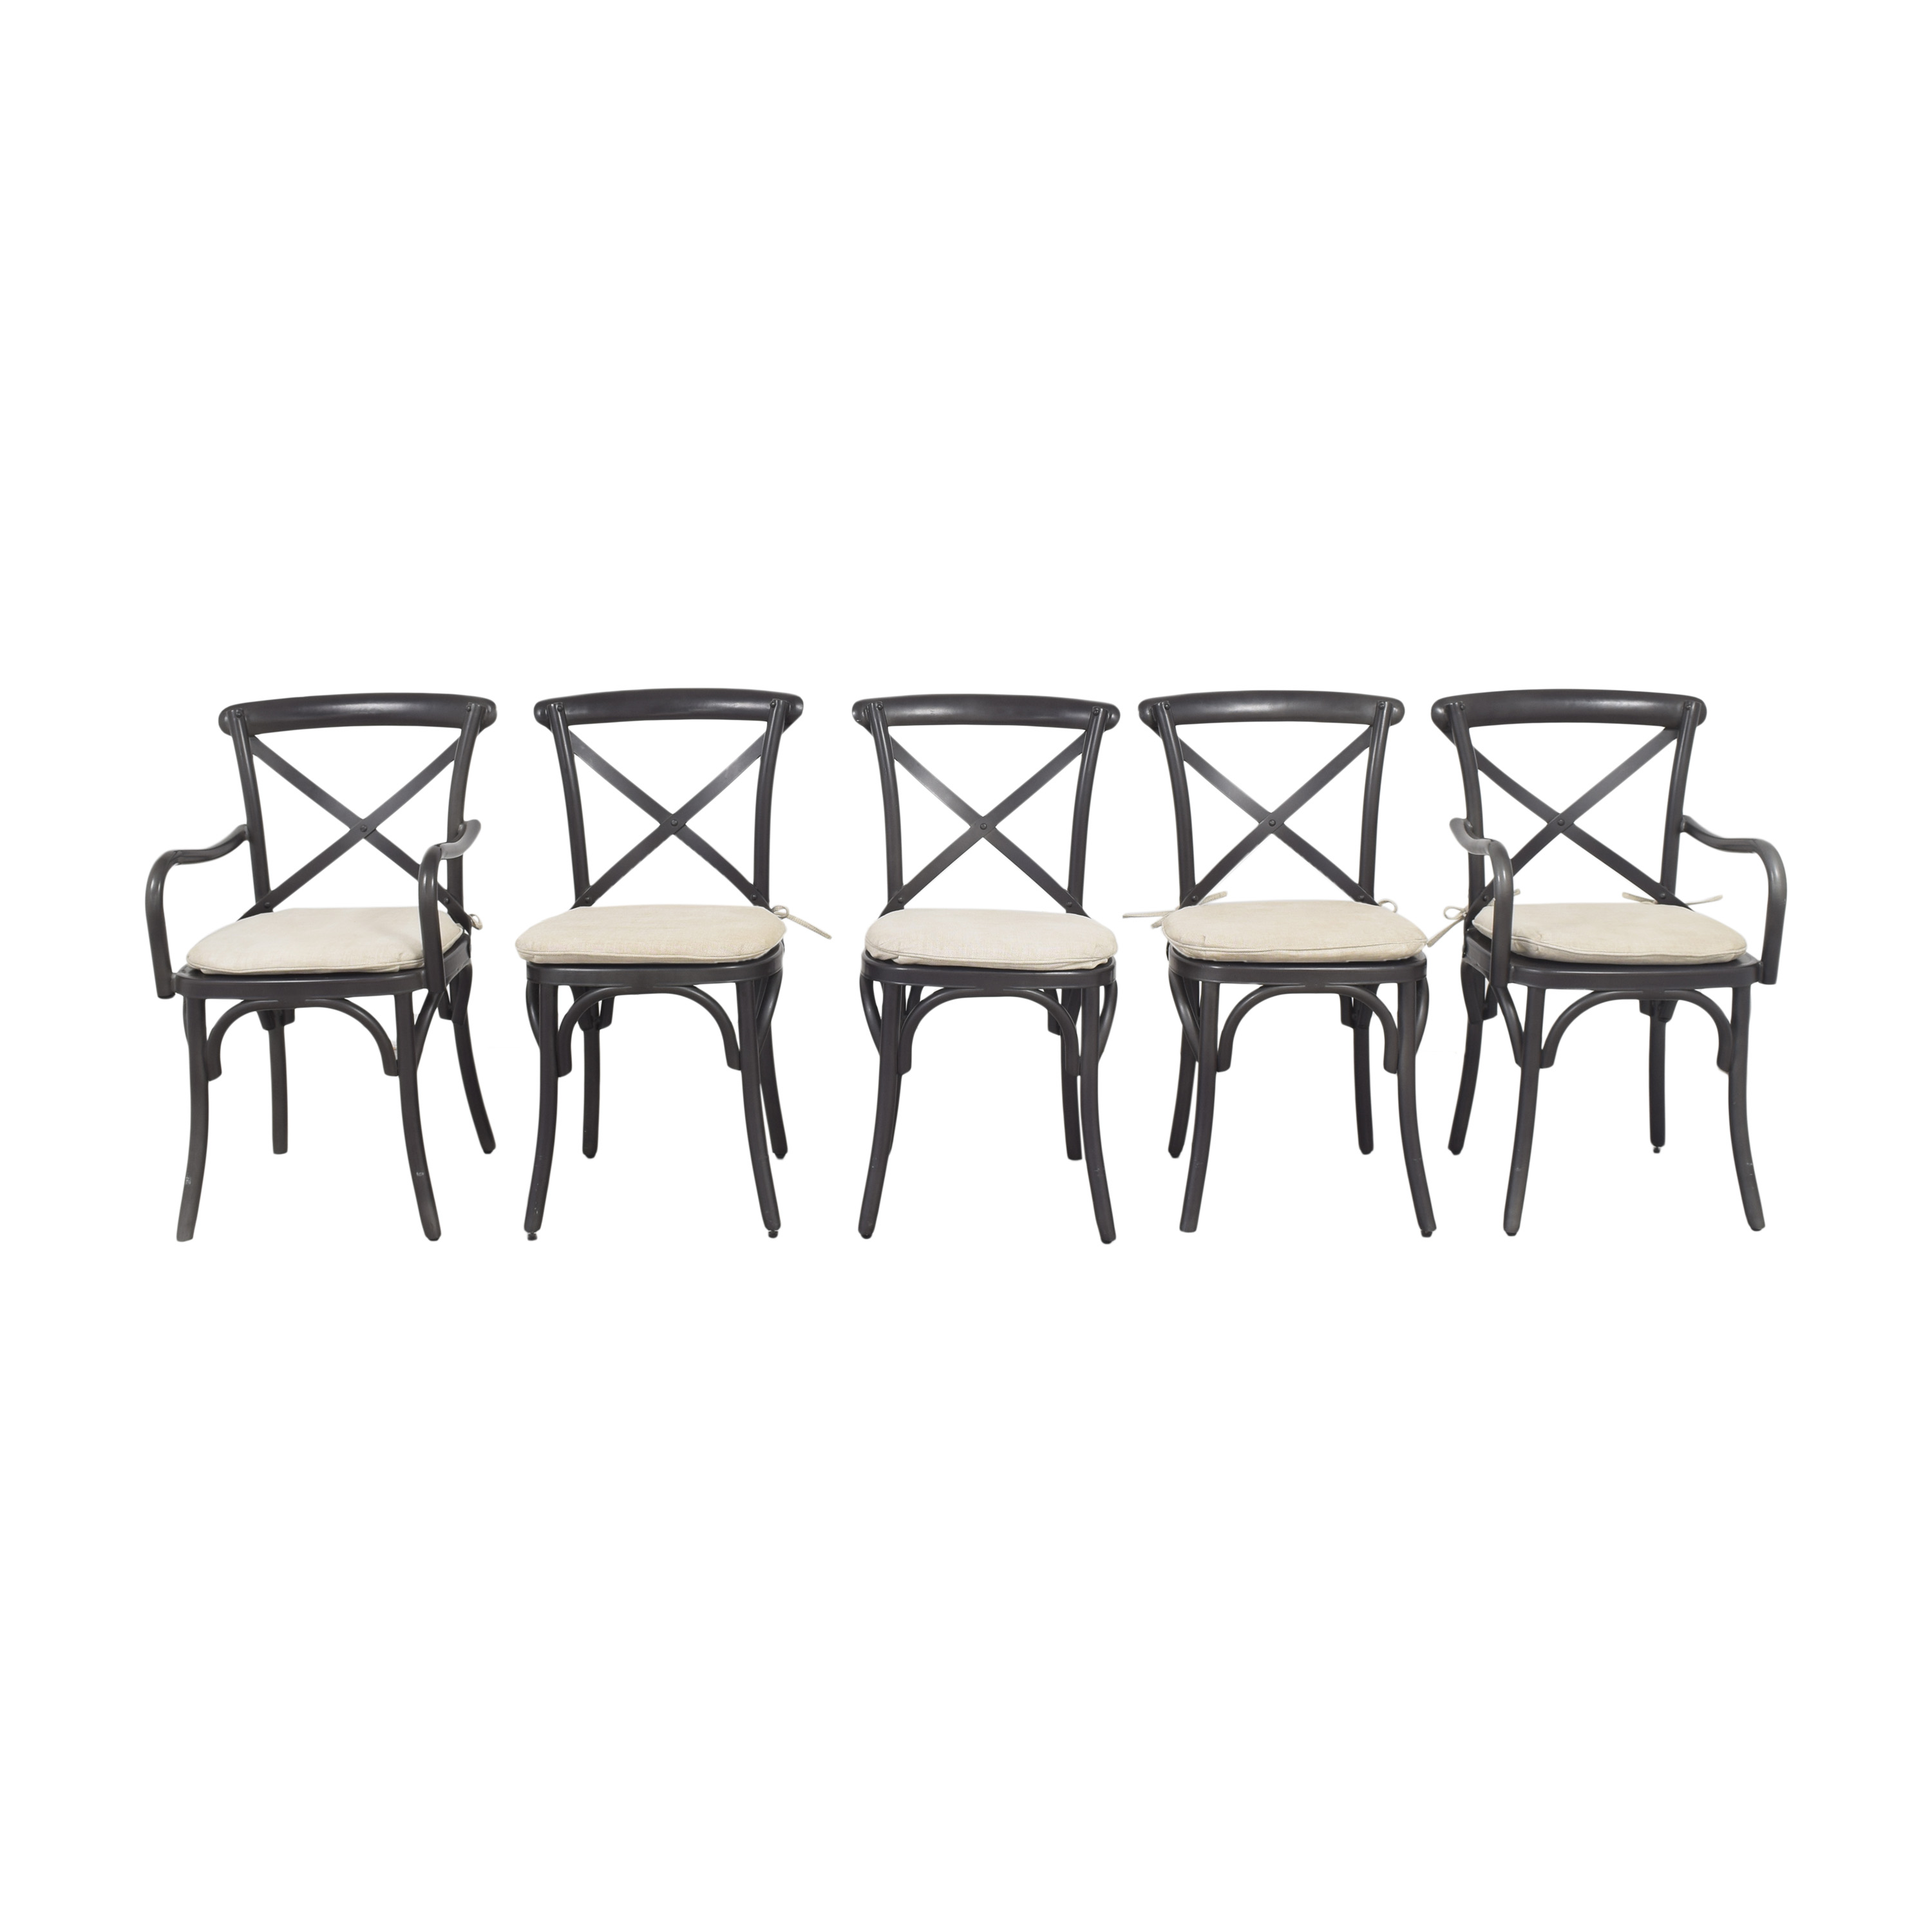 Restoration Hardware Restoration Hardware Madeleine Chairs with Cushions